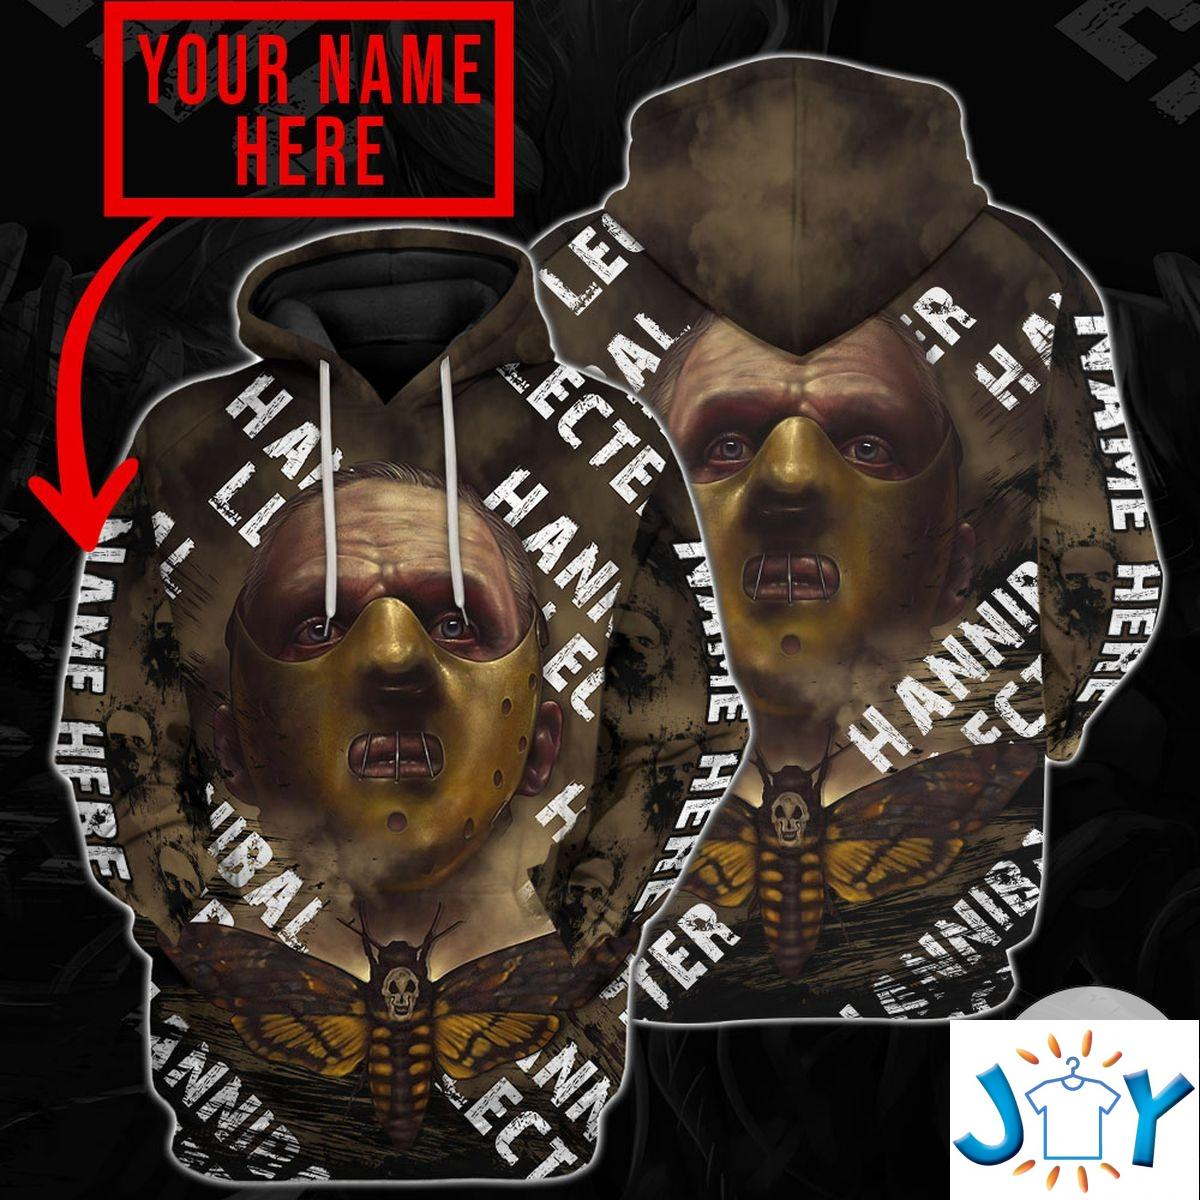 Personalized Hannibal Lecter Hoodie